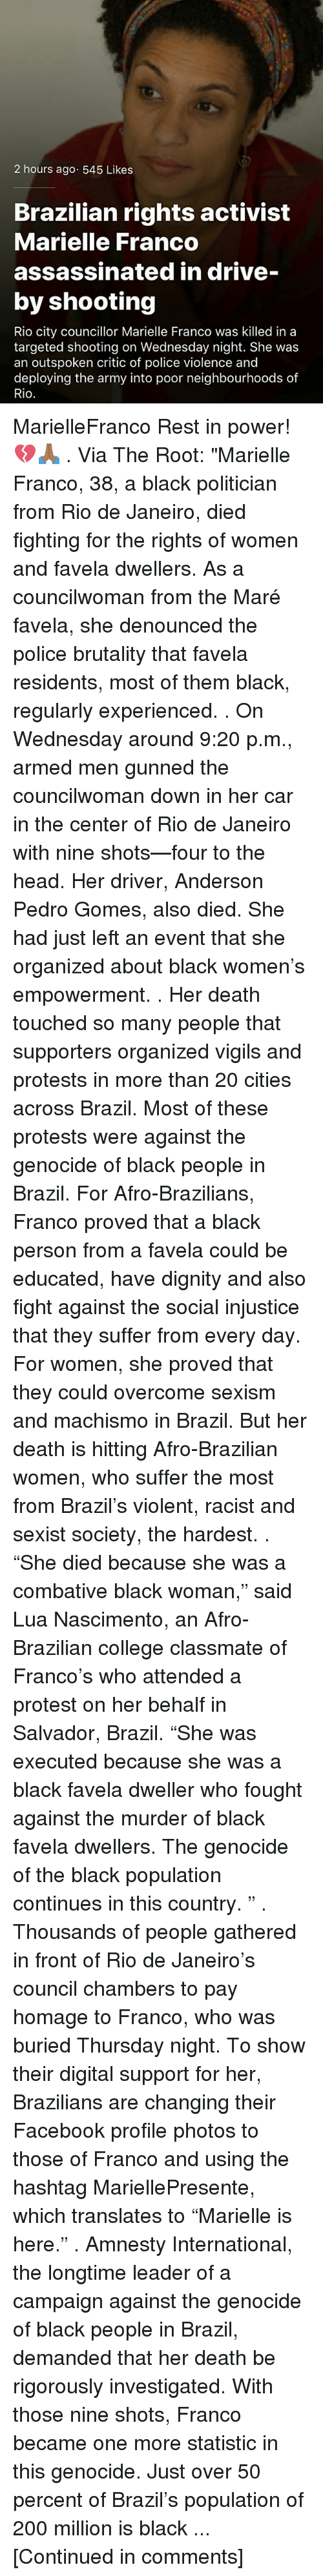 "Bailey Jay, College, and Drive By: 2 hours ago 545 Likes  Brazilian rights activist  Marielle Franco  assassinated in drive-  by shooting  Rio city councillor Marielle Franco was killed in a  targeted shooting on Wednesday night. She was  an outspoken critic of police violence and  deploying the army into poor neighbourhoods of  Rio MarielleFranco Rest in power! 💔🙏🏾 . Via The Root: ""Marielle Franco, 38, a black politician from Rio de Janeiro, died fighting for the rights of women and favela dwellers. As a councilwoman from the Maré favela, she denounced the police brutality that favela residents, most of them black, regularly experienced. . On Wednesday around 9:20 p.m., armed men gunned the councilwoman down in her car in the center of Rio de Janeiro with nine shots—four to the head. Her driver, Anderson Pedro Gomes, also died. She had just left an event that she organized about black women's empowerment. . Her death touched so many people that supporters organized vigils and protests in more than 20 cities across Brazil. Most of these protests were against the genocide of black people in Brazil. For Afro-Brazilians, Franco proved that a black person from a favela could be educated, have dignity and also fight against the social injustice that they suffer from every day. For women, she proved that they could overcome sexism and machismo in Brazil. But her death is hitting Afro-Brazilian women, who suffer the most from Brazil's violent, racist and sexist society, the hardest. . ""She died because she was a combative black woman,"" said Lua Nascimento, an Afro-Brazilian college classmate of Franco's who attended a protest on her behalf in Salvador, Brazil. ""She was executed because she was a black favela dweller who fought against the murder of black favela dwellers. The genocide of the black population continues in this country. "" . Thousands of people gathered in front of Rio de Janeiro's council chambers to pay homage to Franco, who was buried Thursday night. To show their digital support for her, Brazilians are changing their Facebook profile photos to those of Franco and using the hashtag MariellePresente, which translates to ""Marielle is here."" . Amnesty International, the longtime leader of a campaign against the genocide of black people in Brazil, demanded that her death be rigorously investigated. With those nine shots, Franco became one more statistic in this genocide. Just over 50 percent of Brazil's population of 200 million is black ... [Continued in comments]"